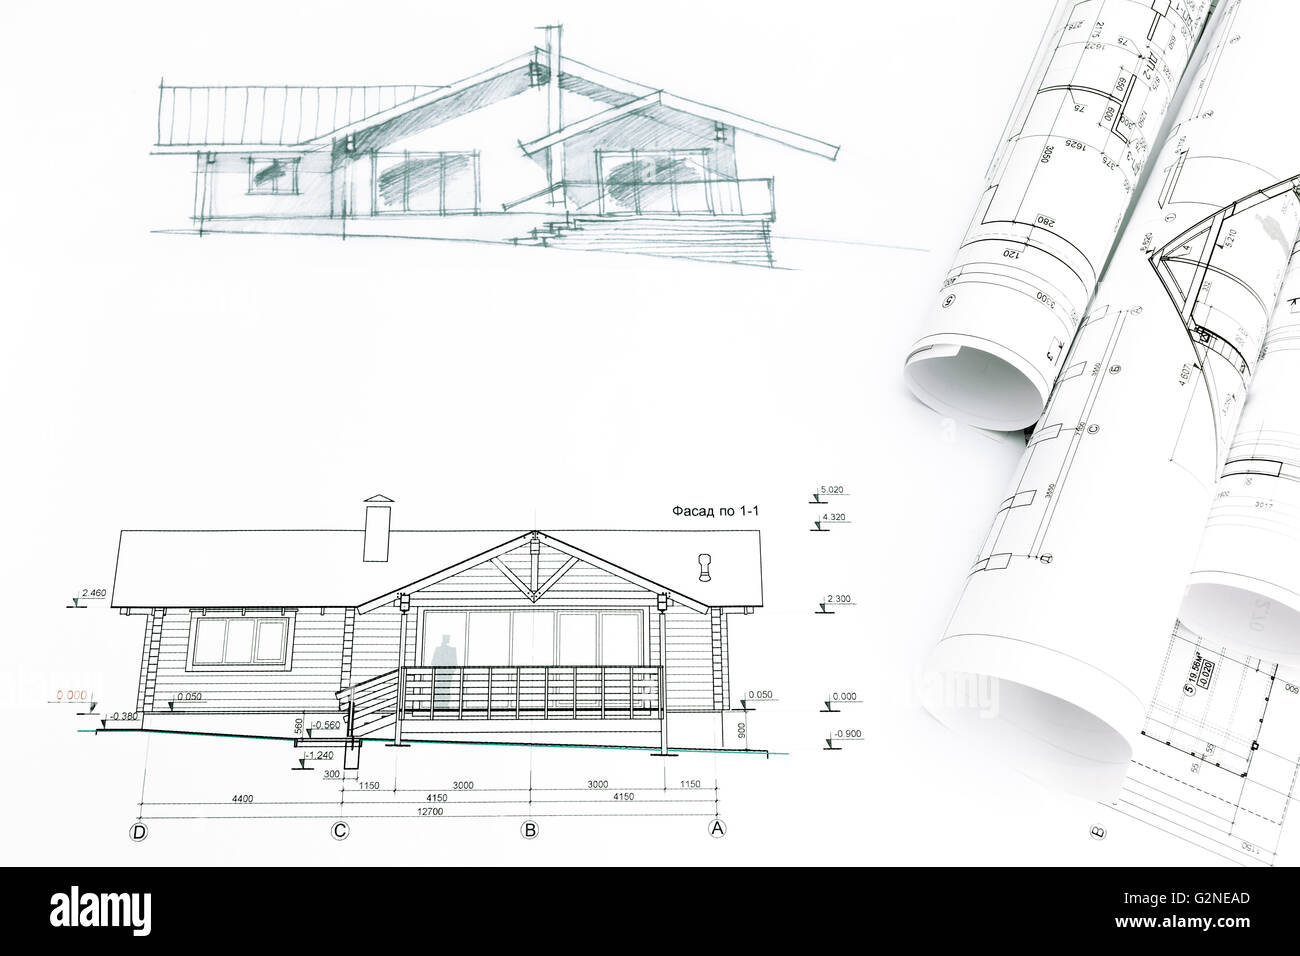 House sketch with engineering and architecture blueprints stock house sketch with engineering and architecture blueprints malvernweather Image collections